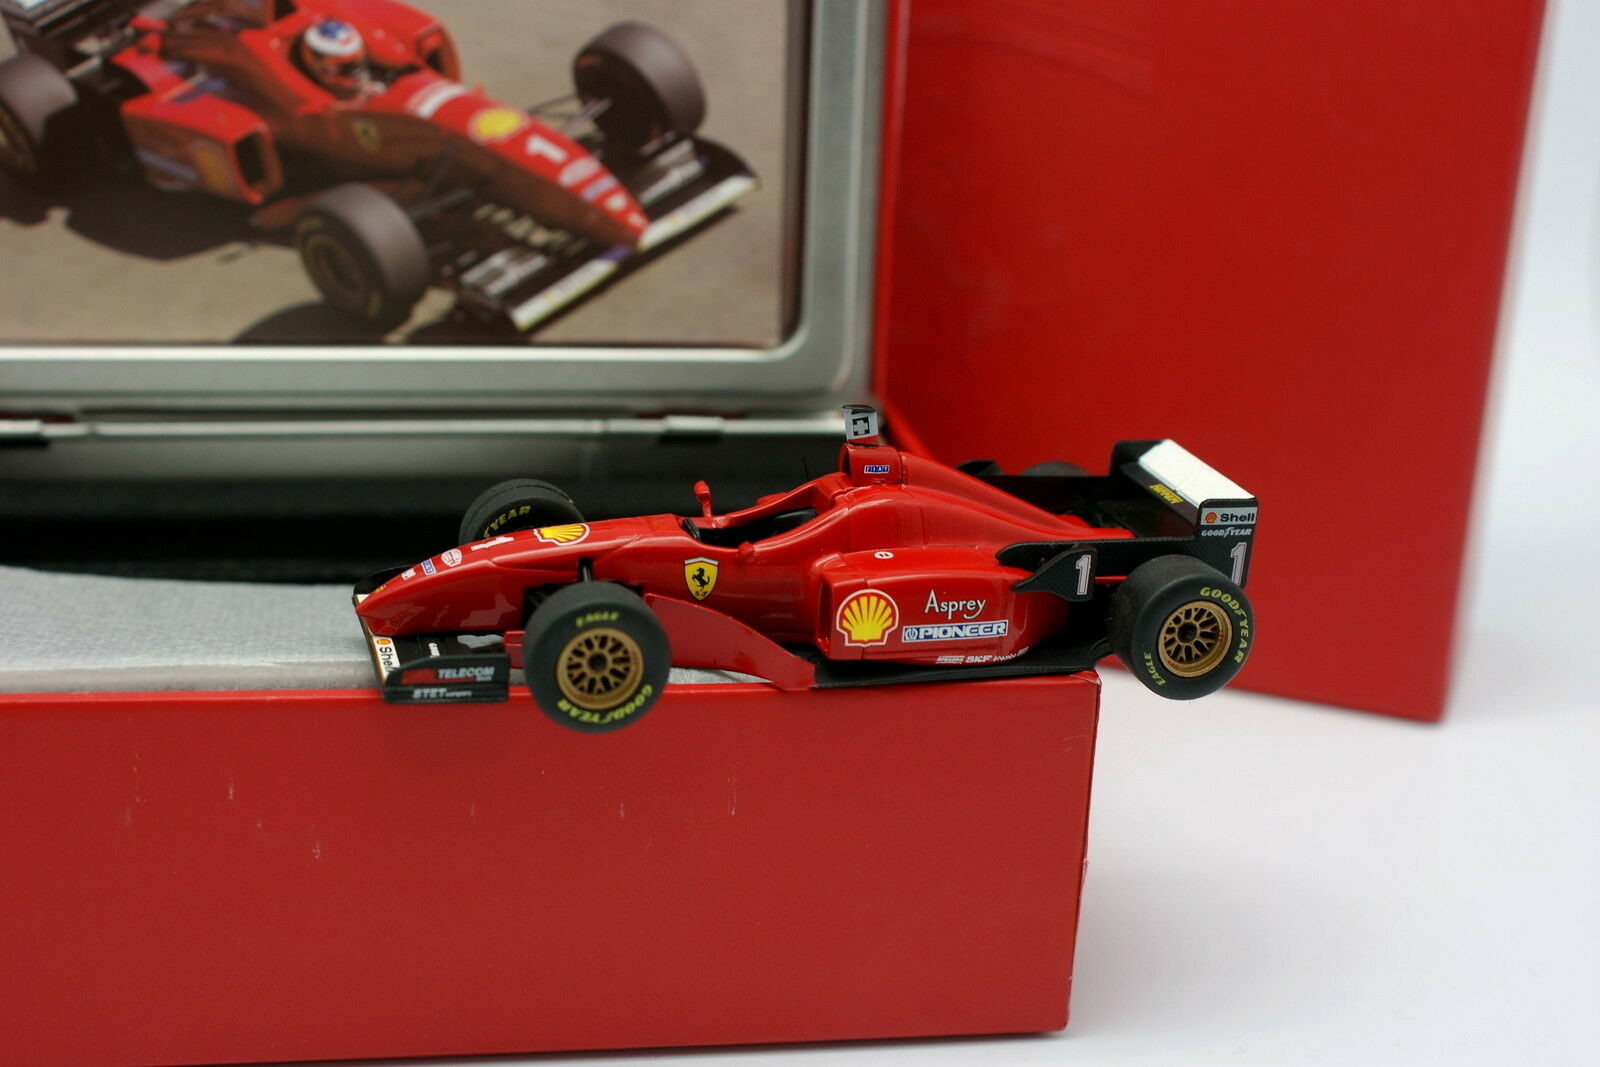 Hot Wheels La Storia 1 43 - F1 Ferrari F310 Winner Barcelona GP 1996